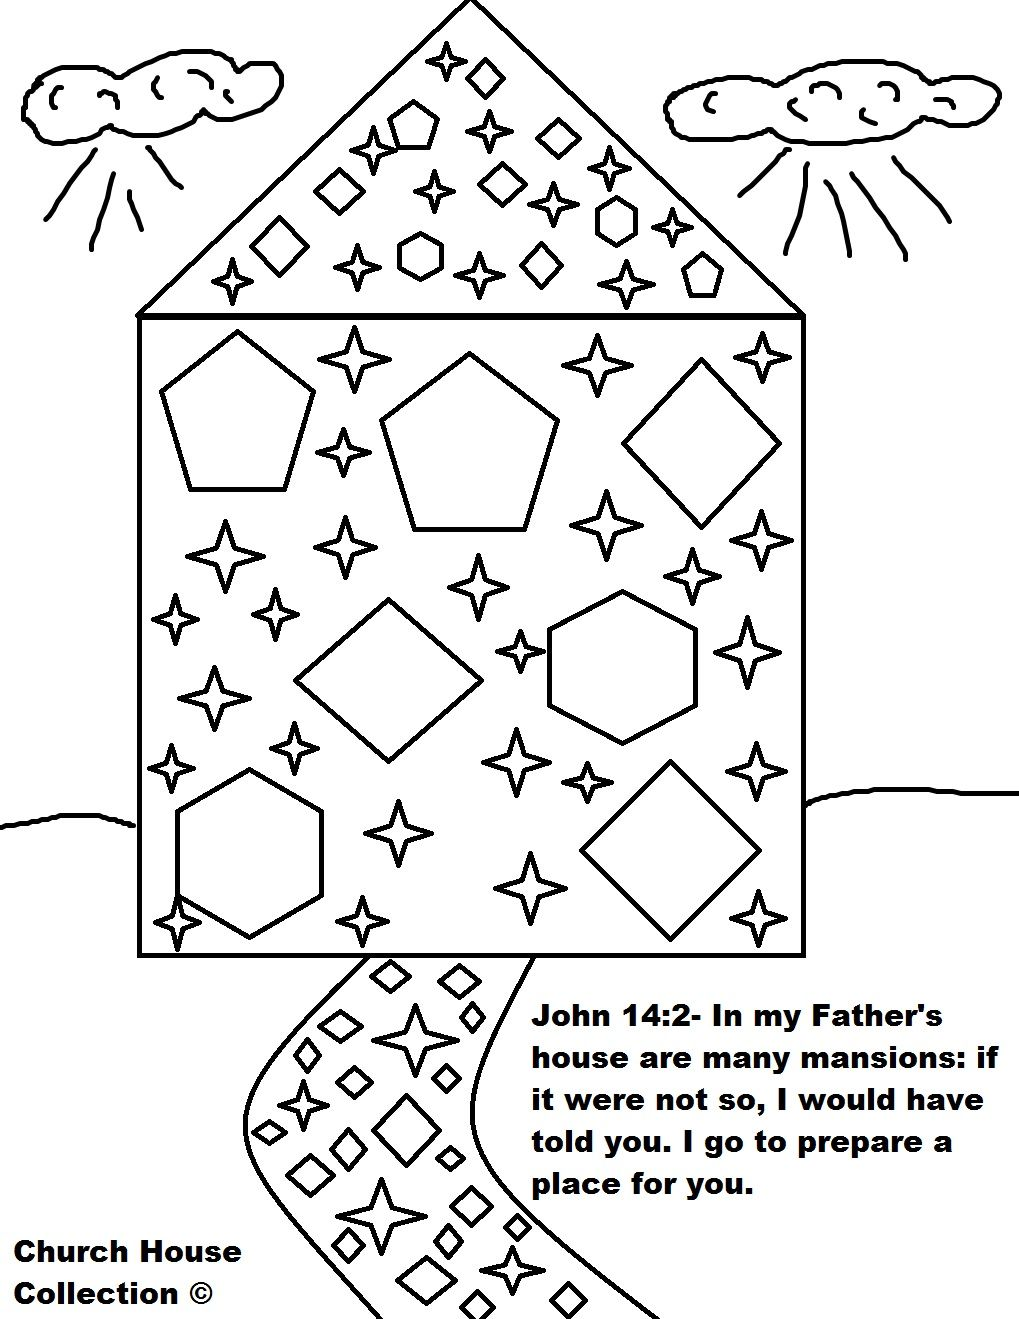 Free coloring pages elijah goes to heaven - Mansions In Heaven And Steets Of Gold John 14 2 In My Father S House Are Many